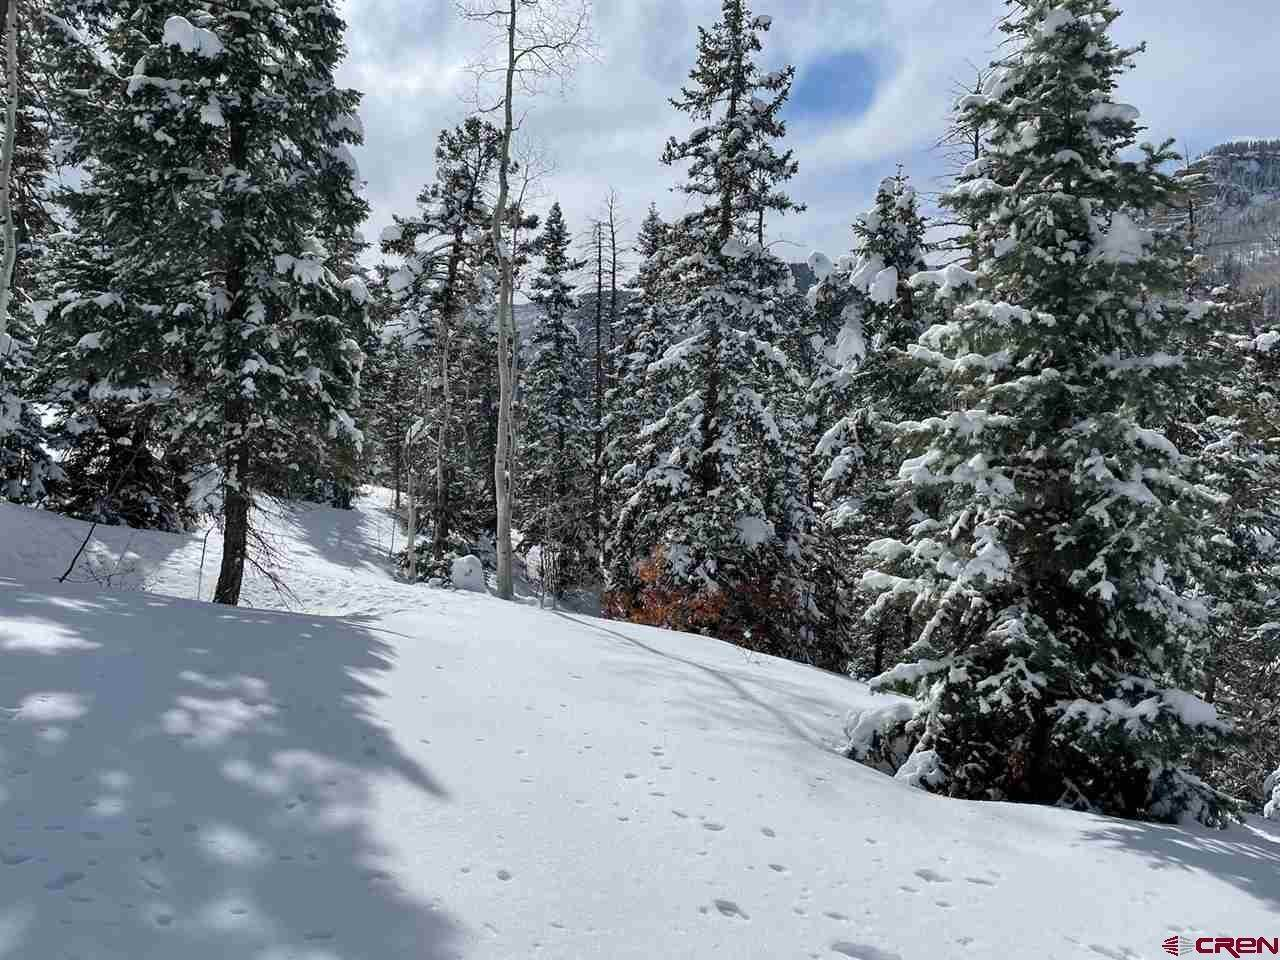 Residential at TBD Deer Run Drive Durango, Colorado 81301 United States